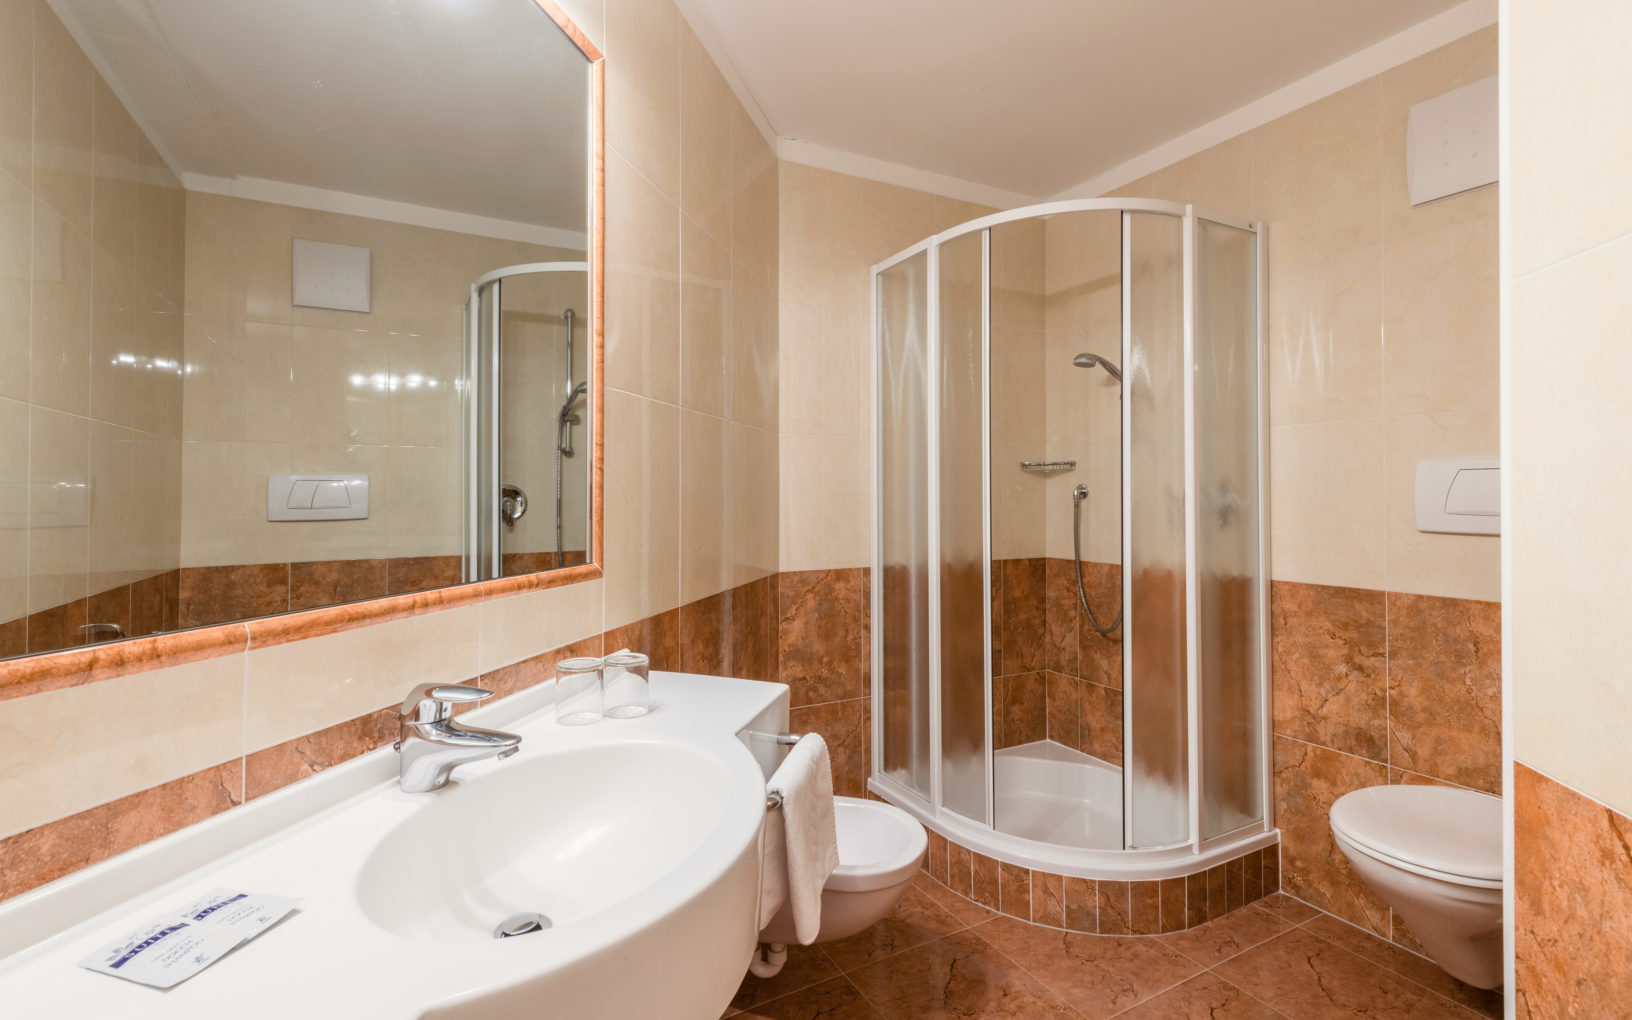 ... Separate Bedroom And Living Room With Snug Sitting Area And Pull Out  Sofa Bed, WLAN, 2 SAT TVs, Phone, Radio And Safe. Spacious Bathroom With  Shower/WC, ...